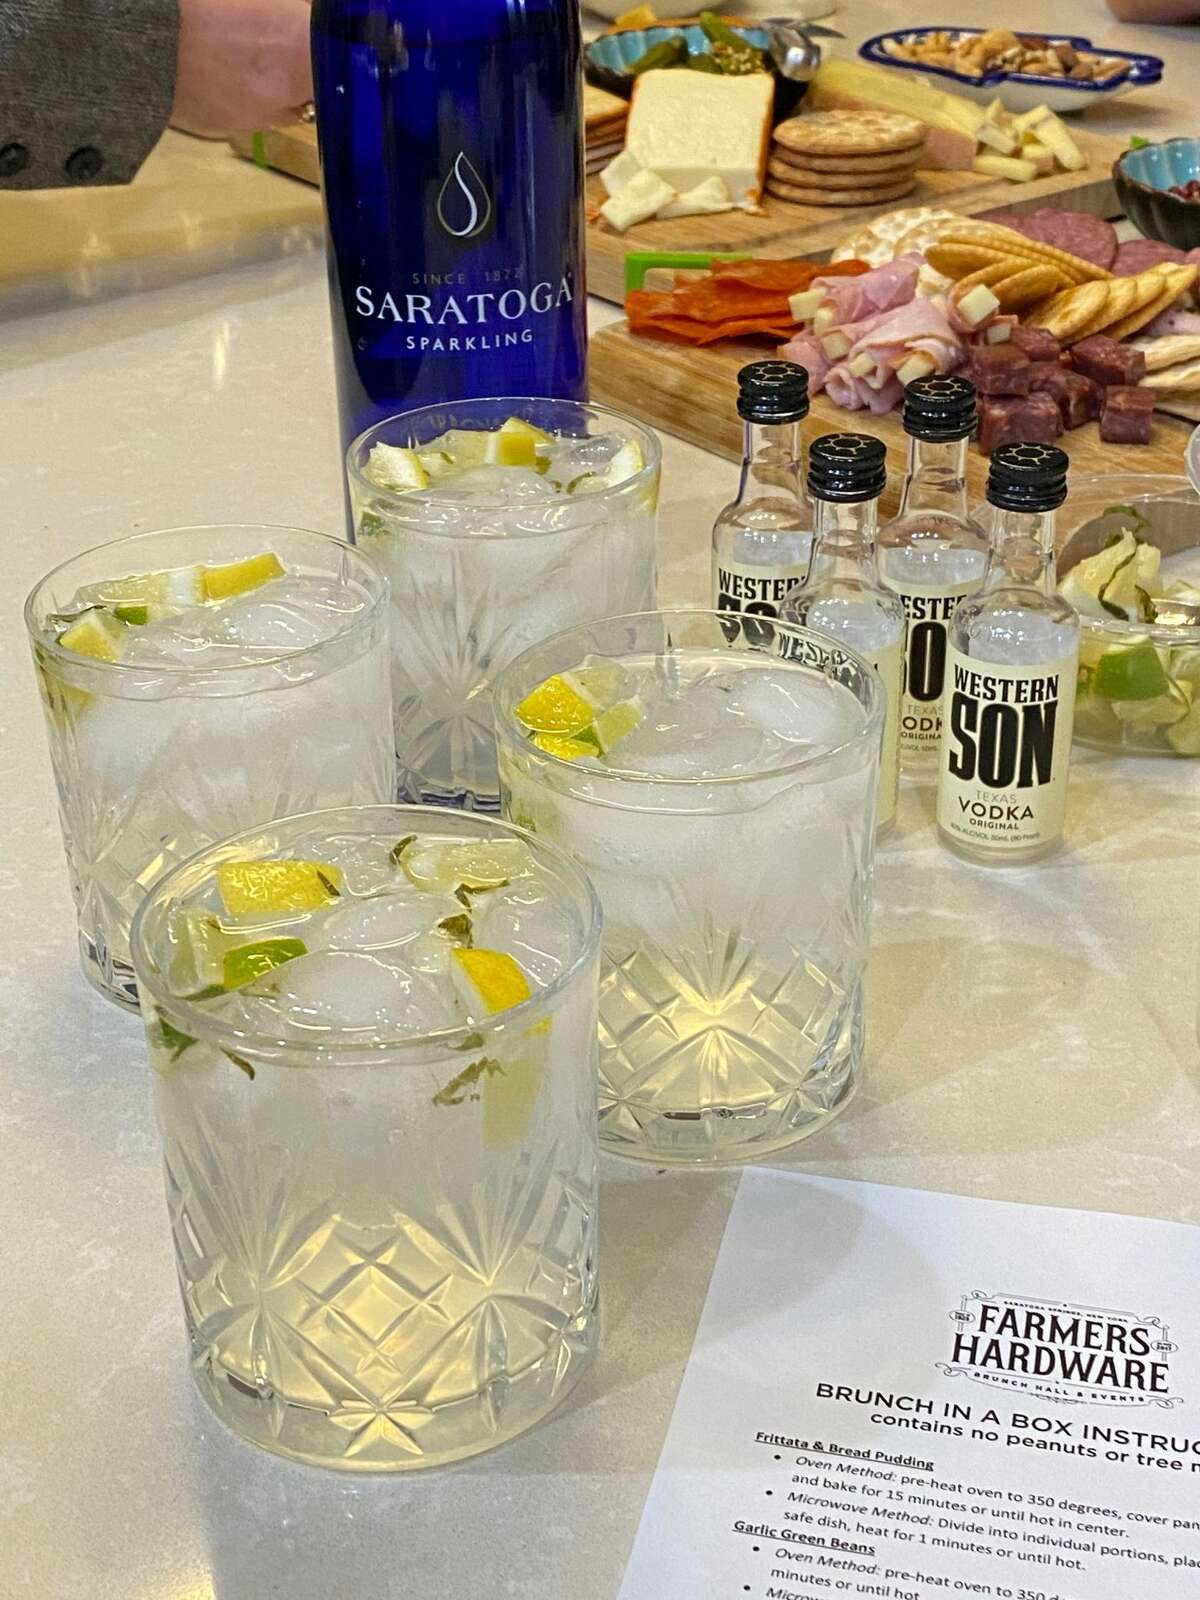 Spiked sparkling lemonade as part of the Boozy Brunch-In-A-Box from Farmer's Hardware in Saratoga Springs. (Photo by Susie Davidson Powell for the Times Union.)